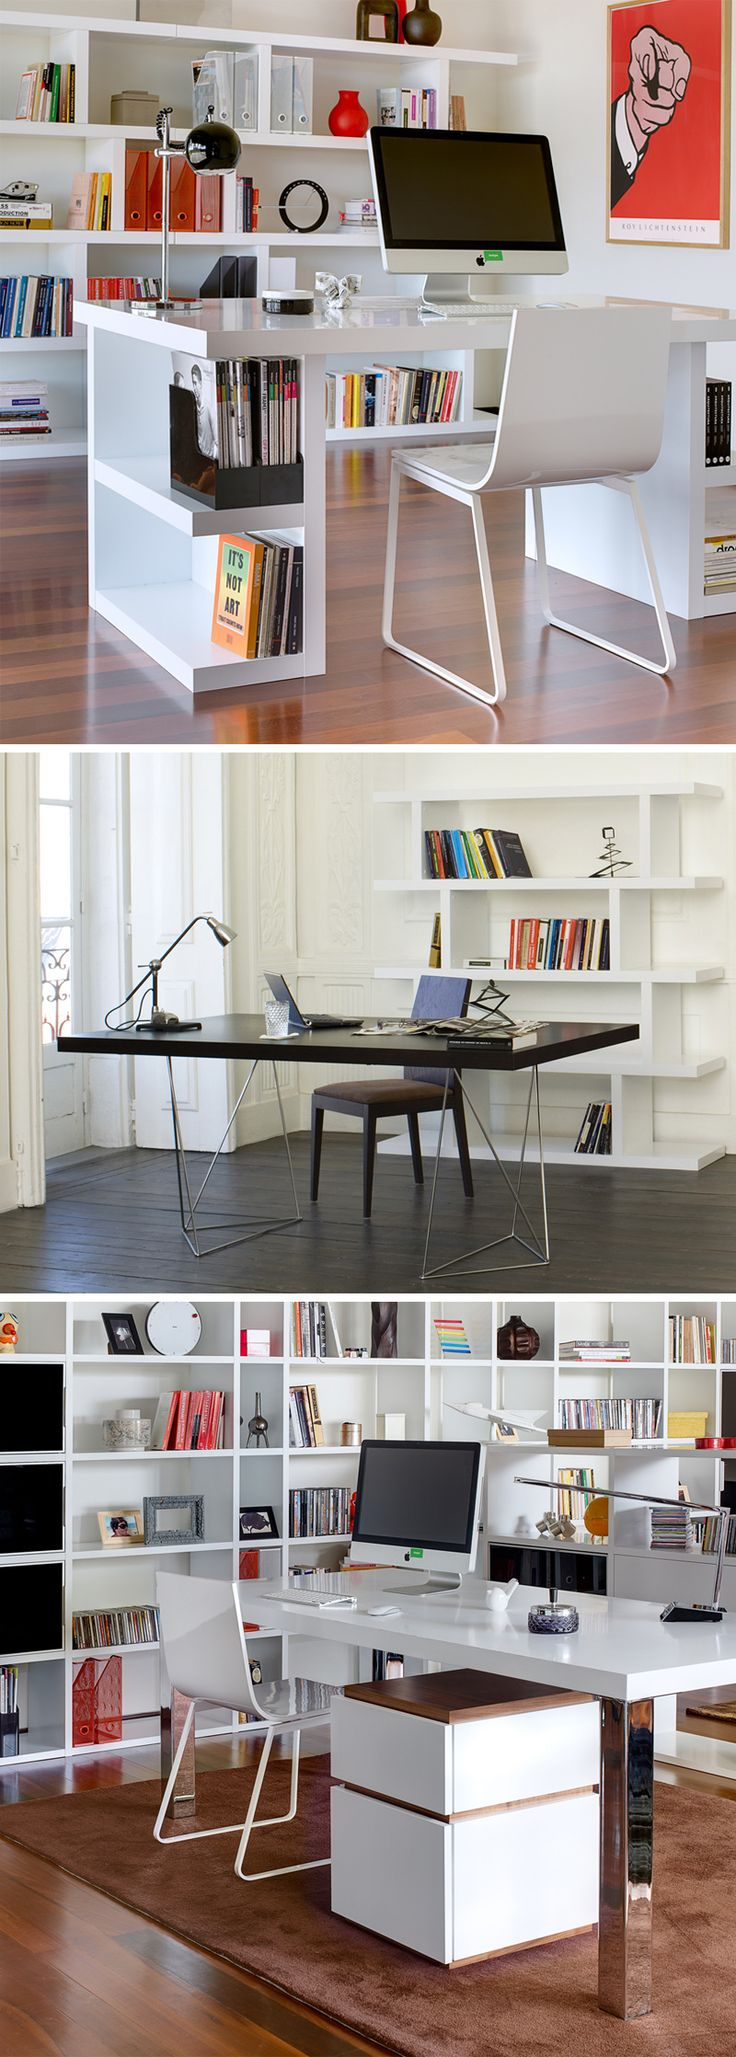 Best 25 Office layouts ideas on Pinterest Craft room design